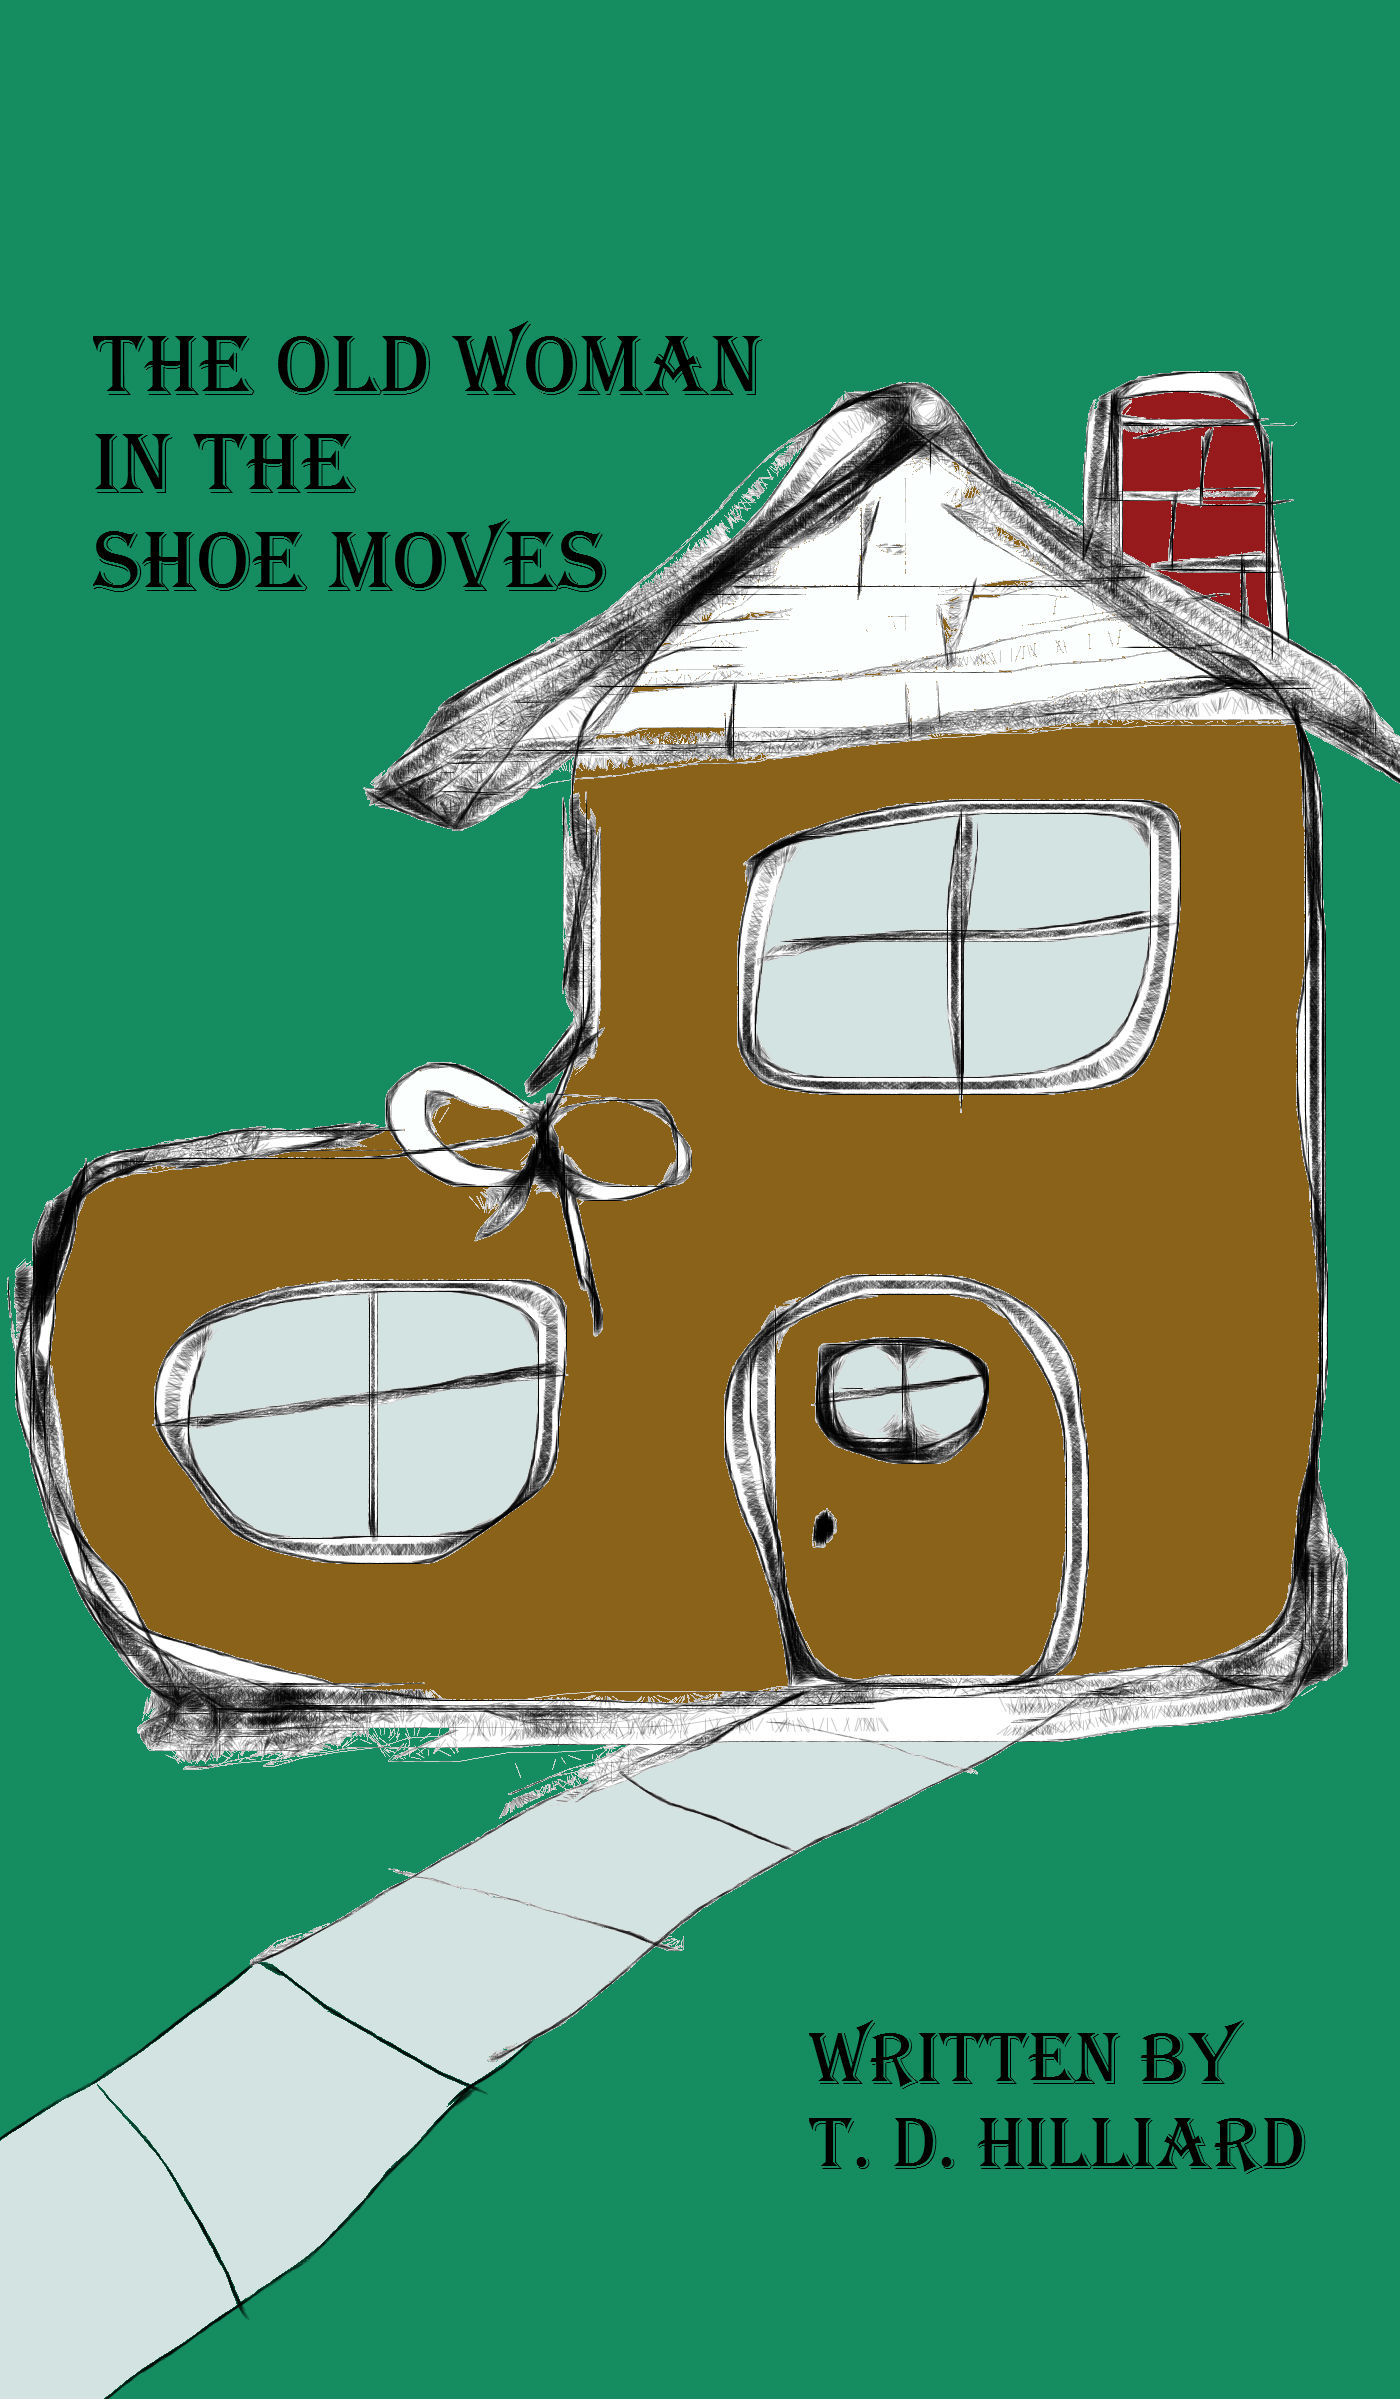 The Old Woman in the Shoe Moves, Storybook One